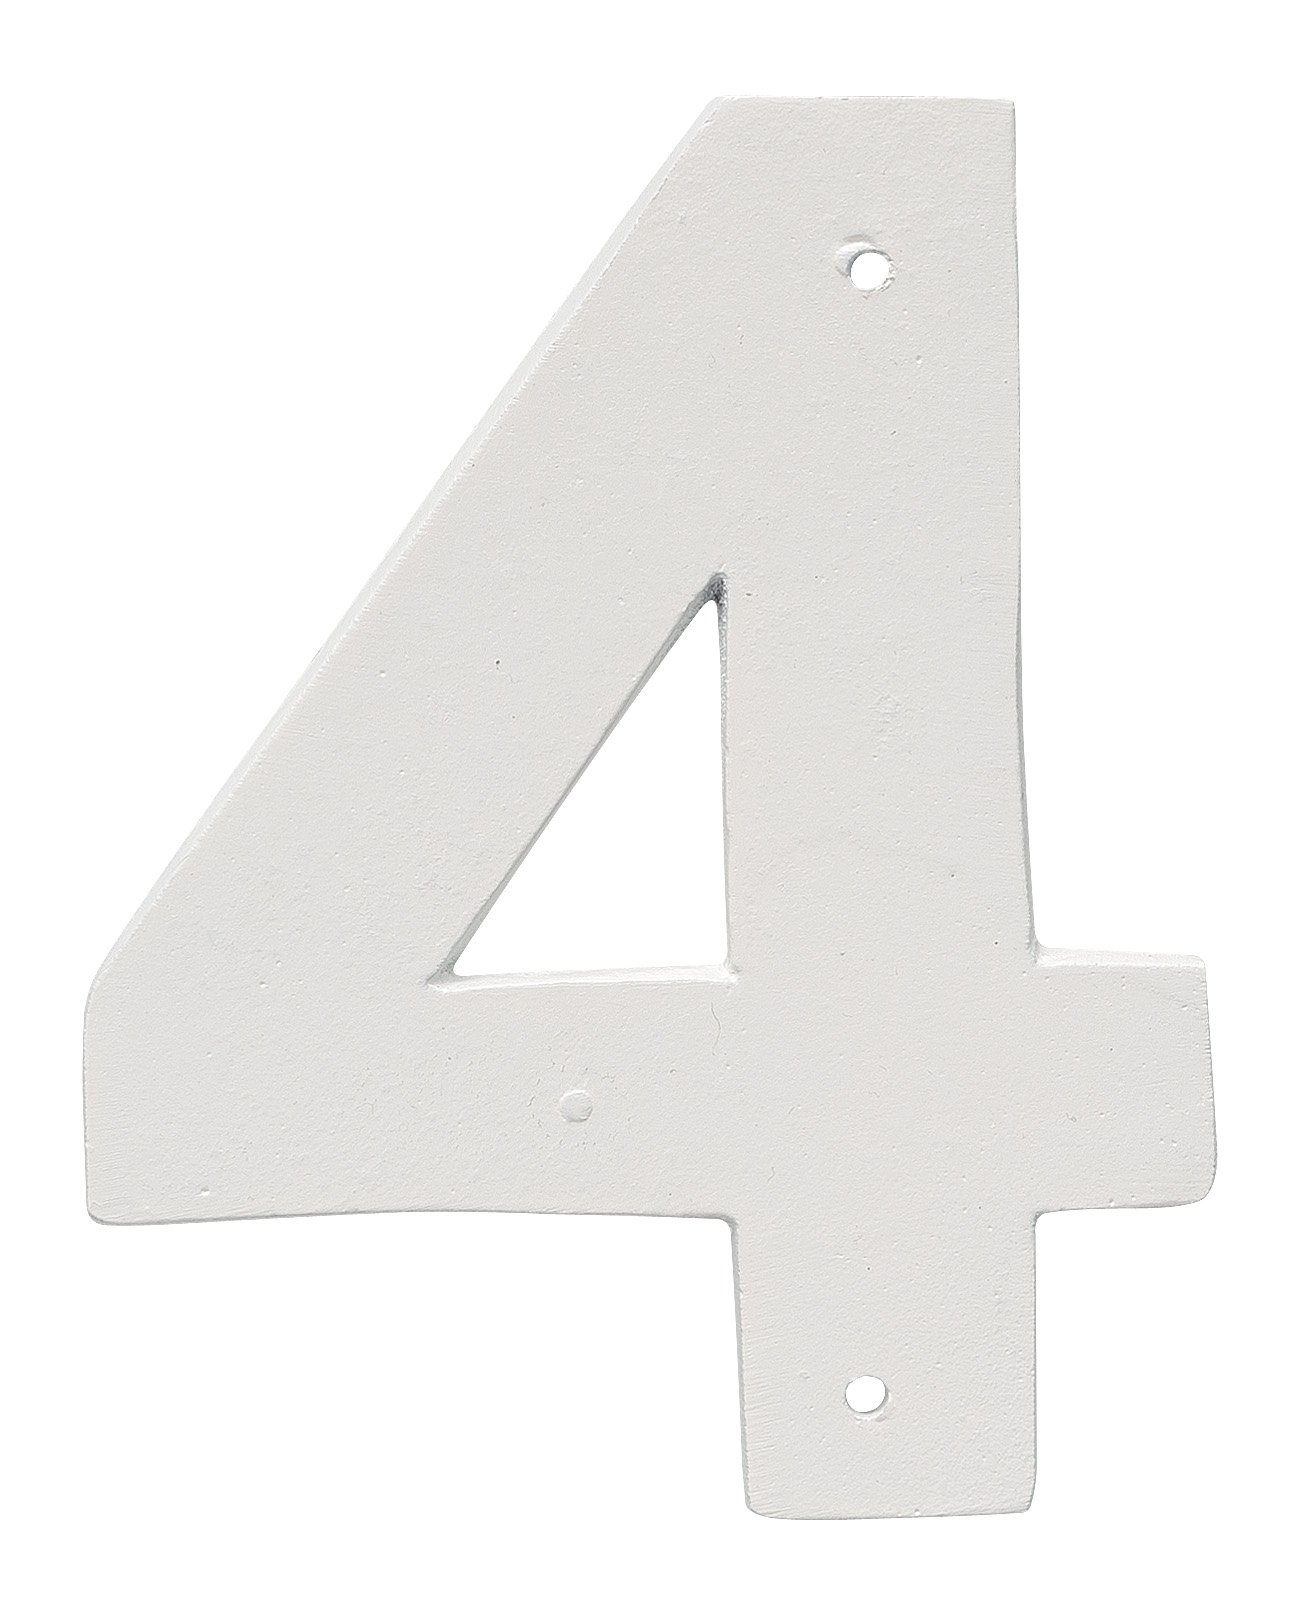 Montague Metal Products 4'' Aluminum House Number 4 Outdoor Plaque, Medium, White